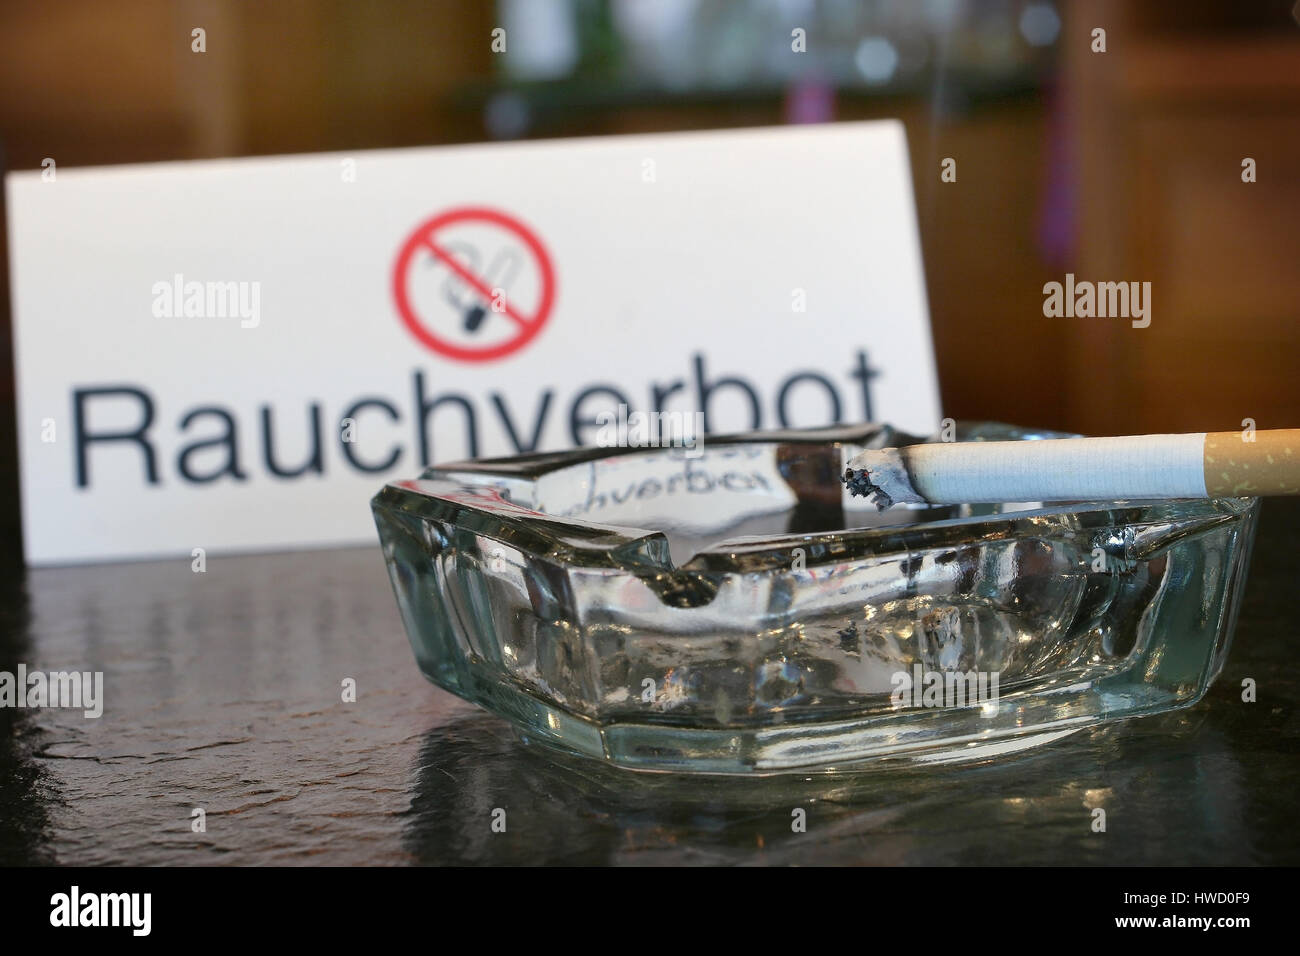 Ashtray and non-smoker's sign, ashtray, ashtray, container, container, things, vessel, vessels, vessel, vessels, - Stock Image